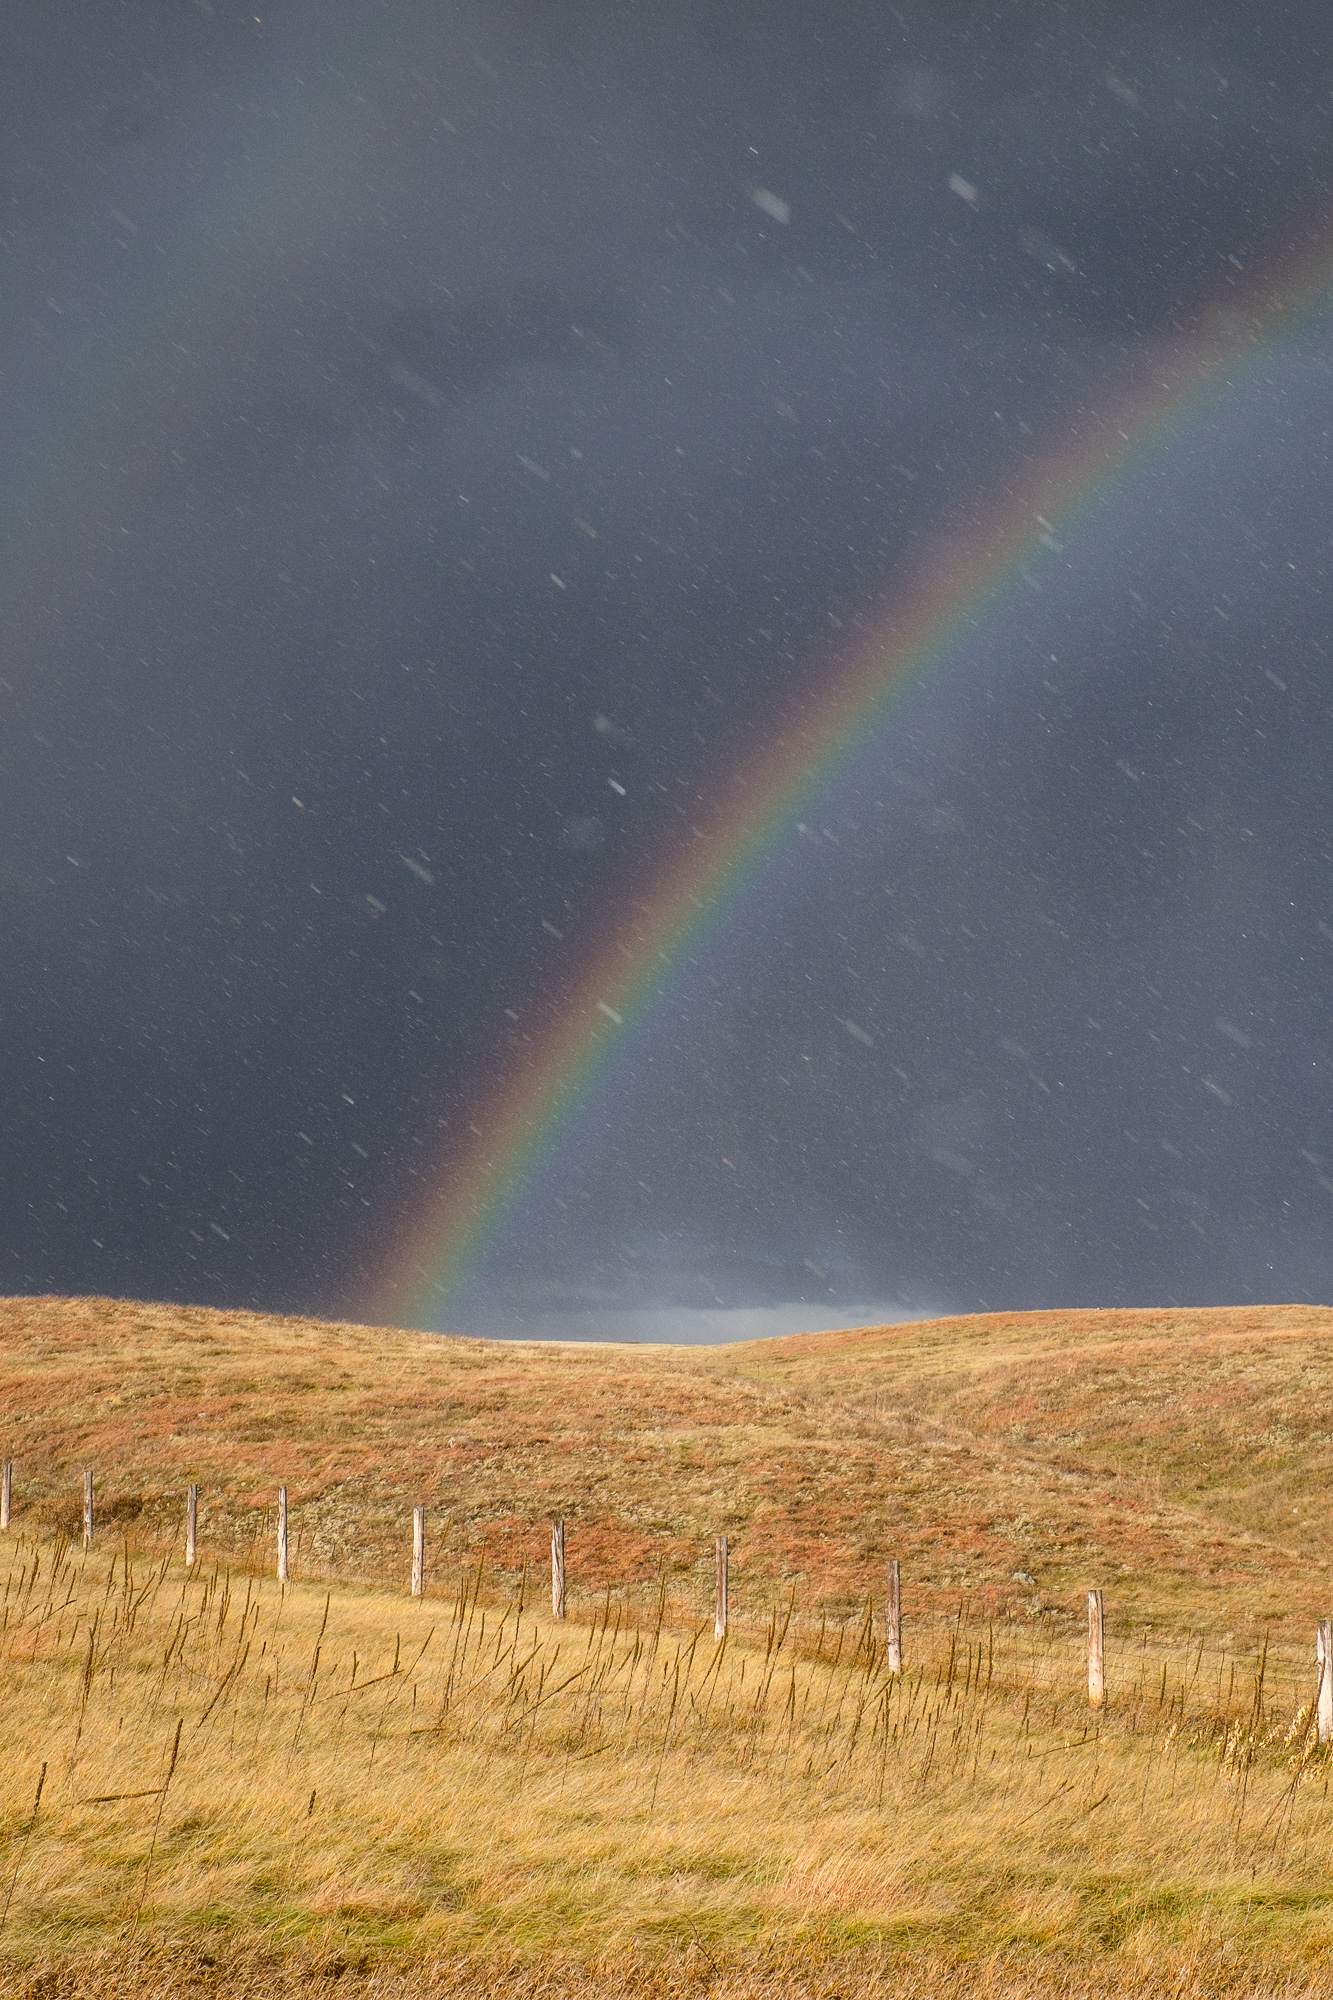 Sunshine and rain revealed a beautiful rainbow one later afternoon.